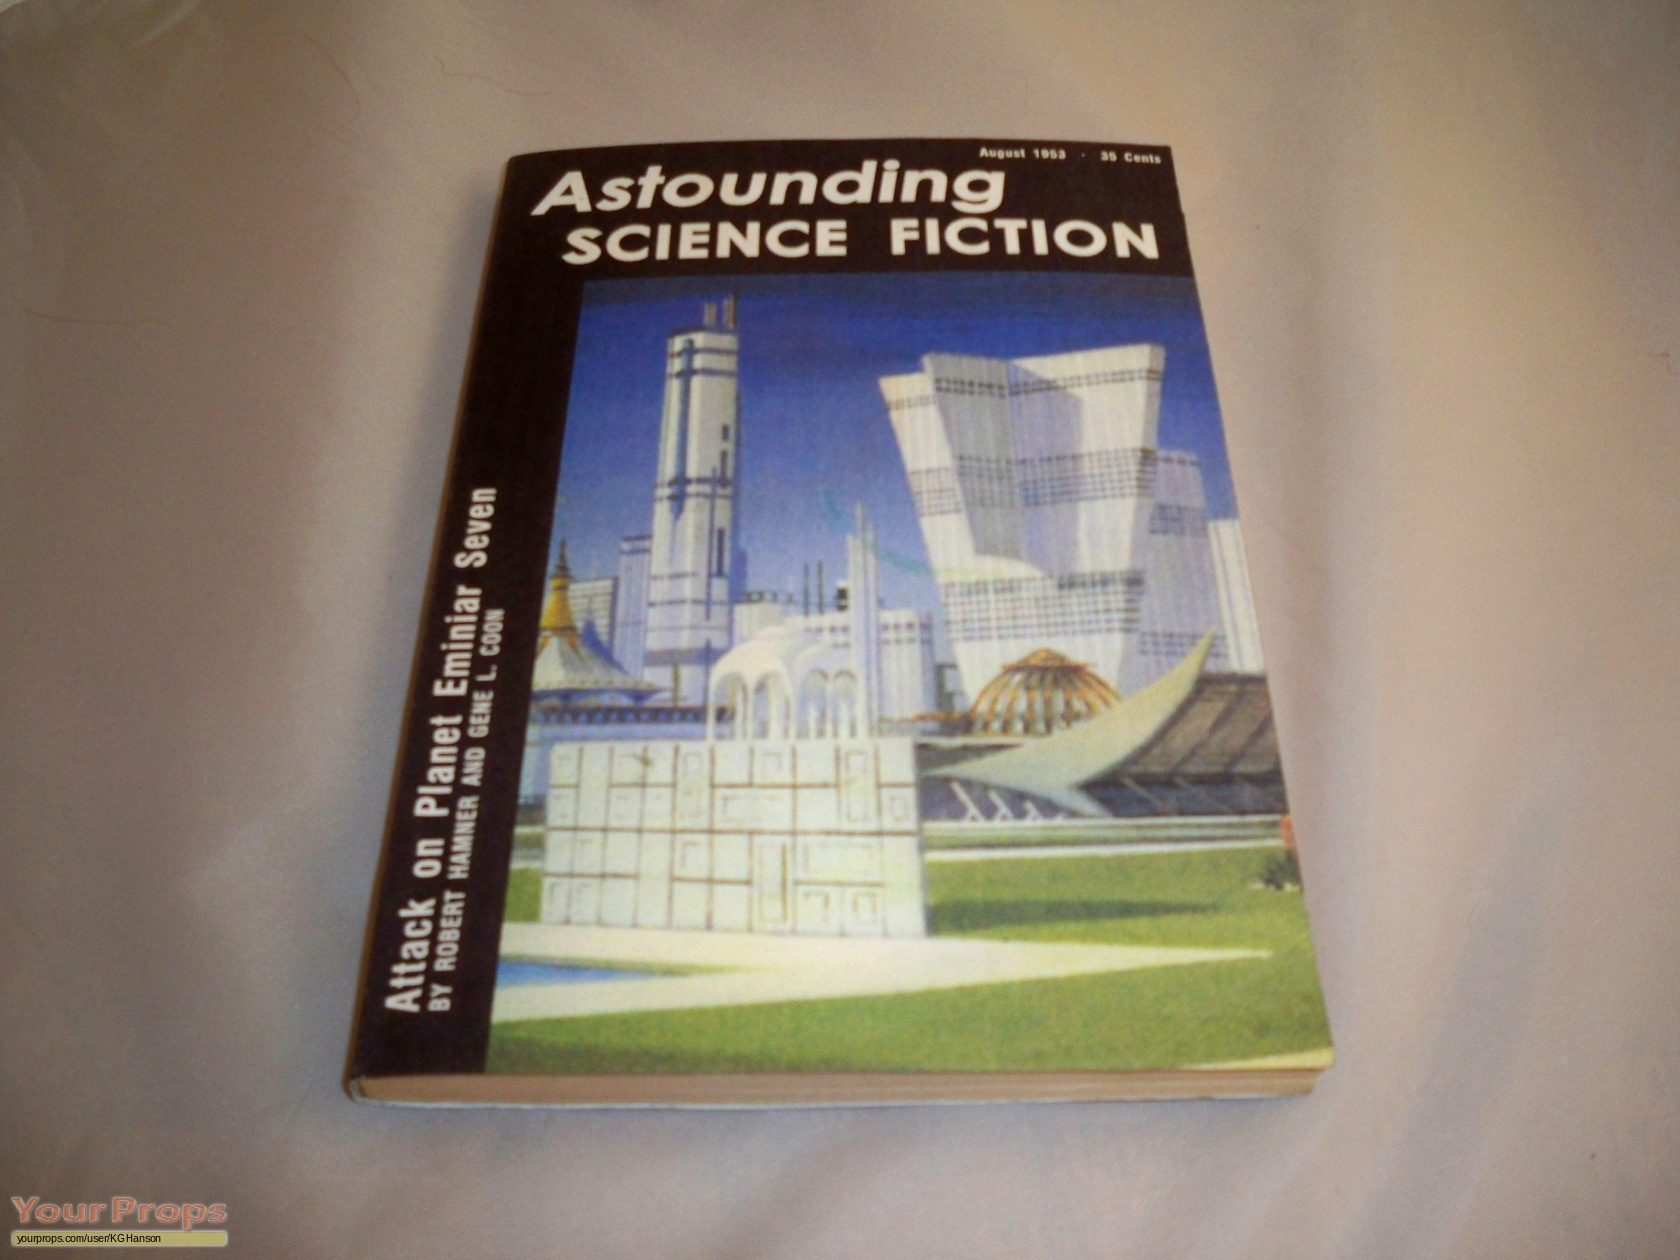 Star trek: deep space nine, 'astounding science fiction' - prop book